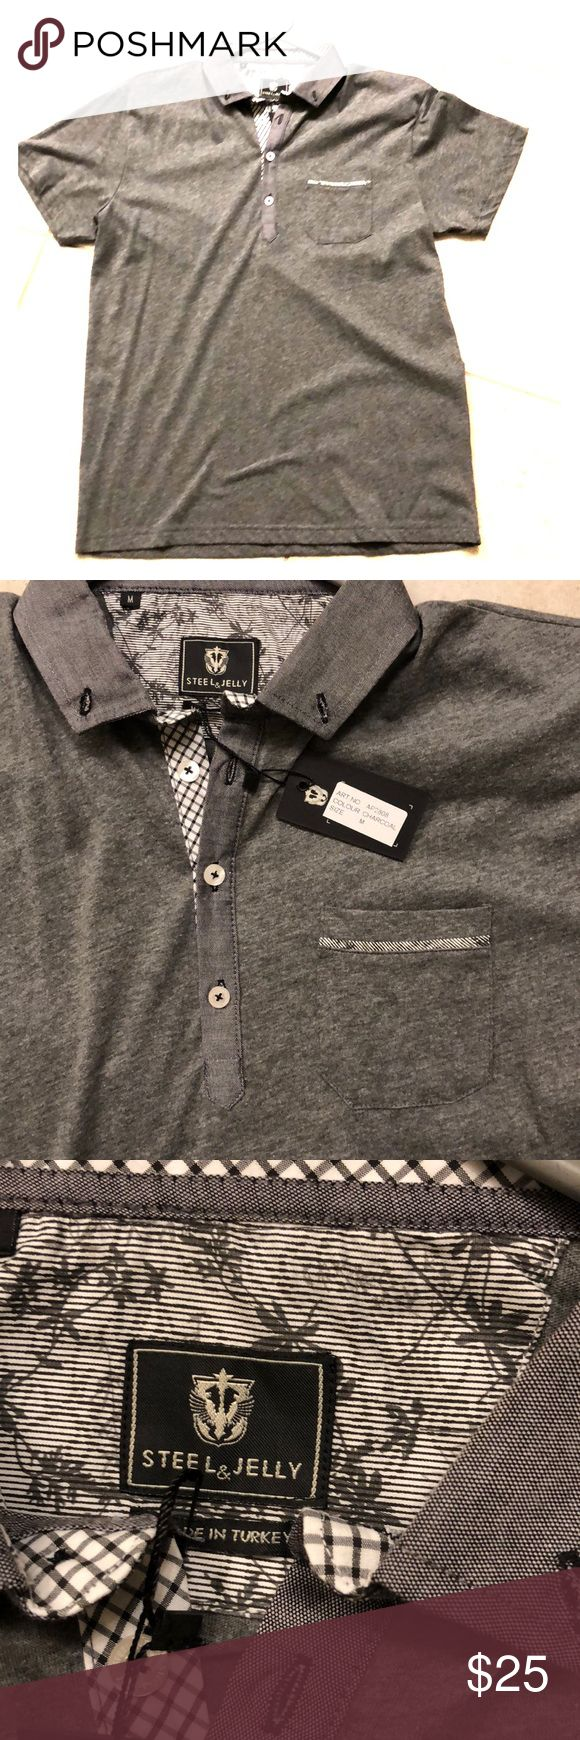 Mens Polo Shirt by Steel & Jelly NWT Polo Shirt by Steel & Jelly NWT with a Pocket in Charcoal Gray Size M Made in Turkey 60% Cotton/ 40% Polyester Steel & Jelly Shirts Polos